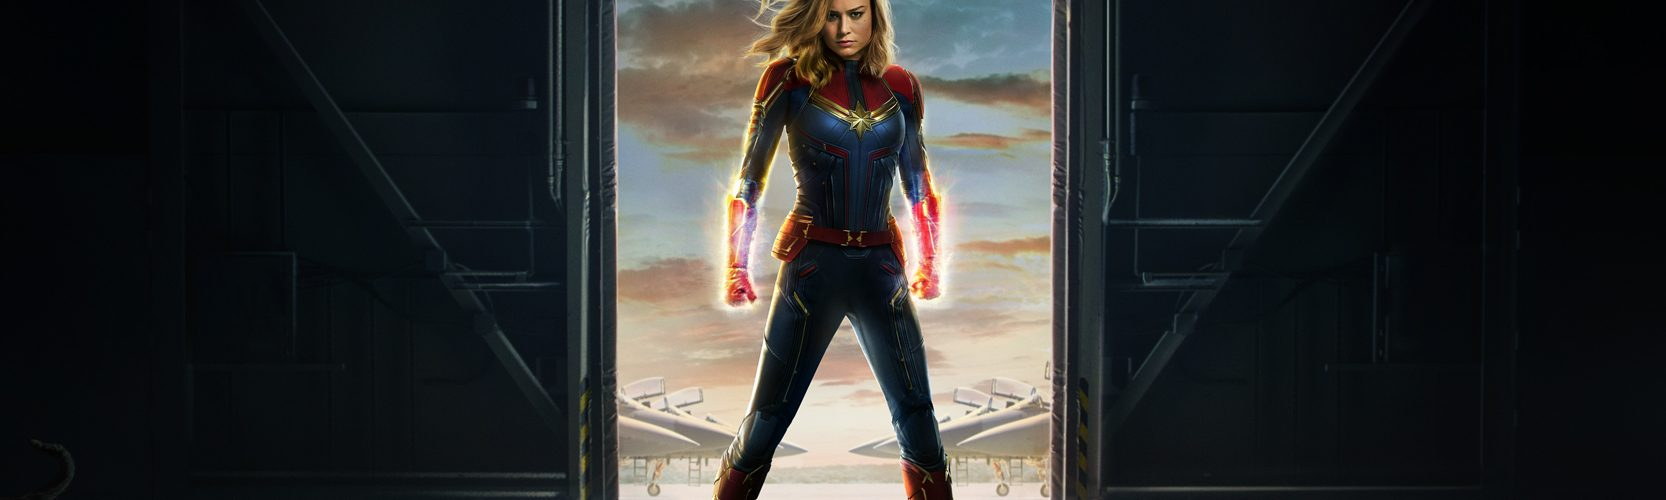 Bree Larson is Captain Marvel. Poster courtesy Marvel Studios.